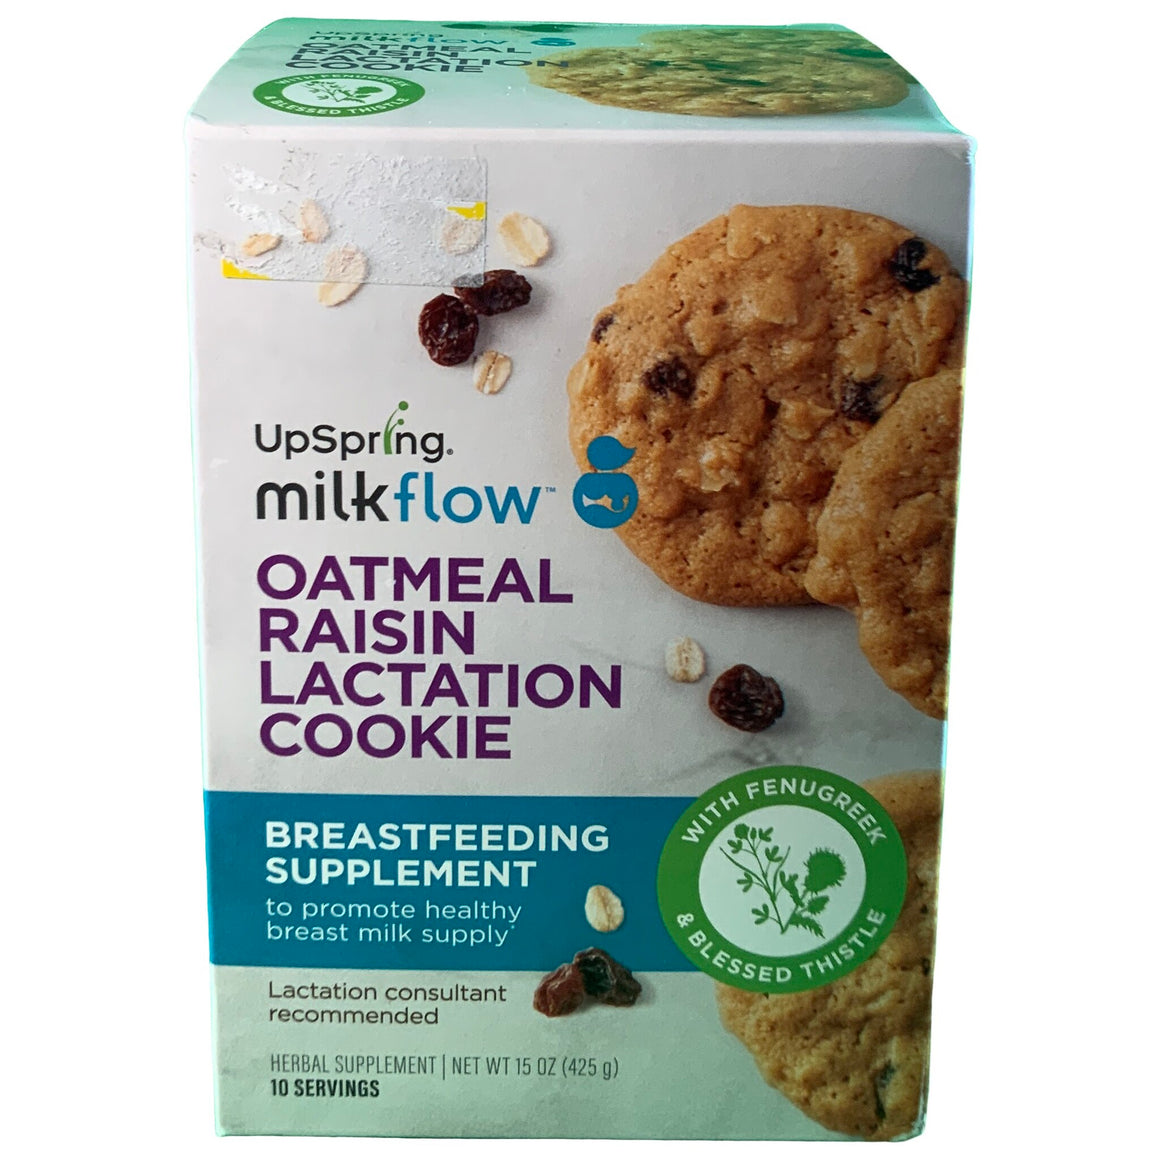 Lactation Cookies, Oatmeal Raisin Lactation Supplement, With Fenugreek And Blessed Thistle For Lactation Support - Upspring Milkflow